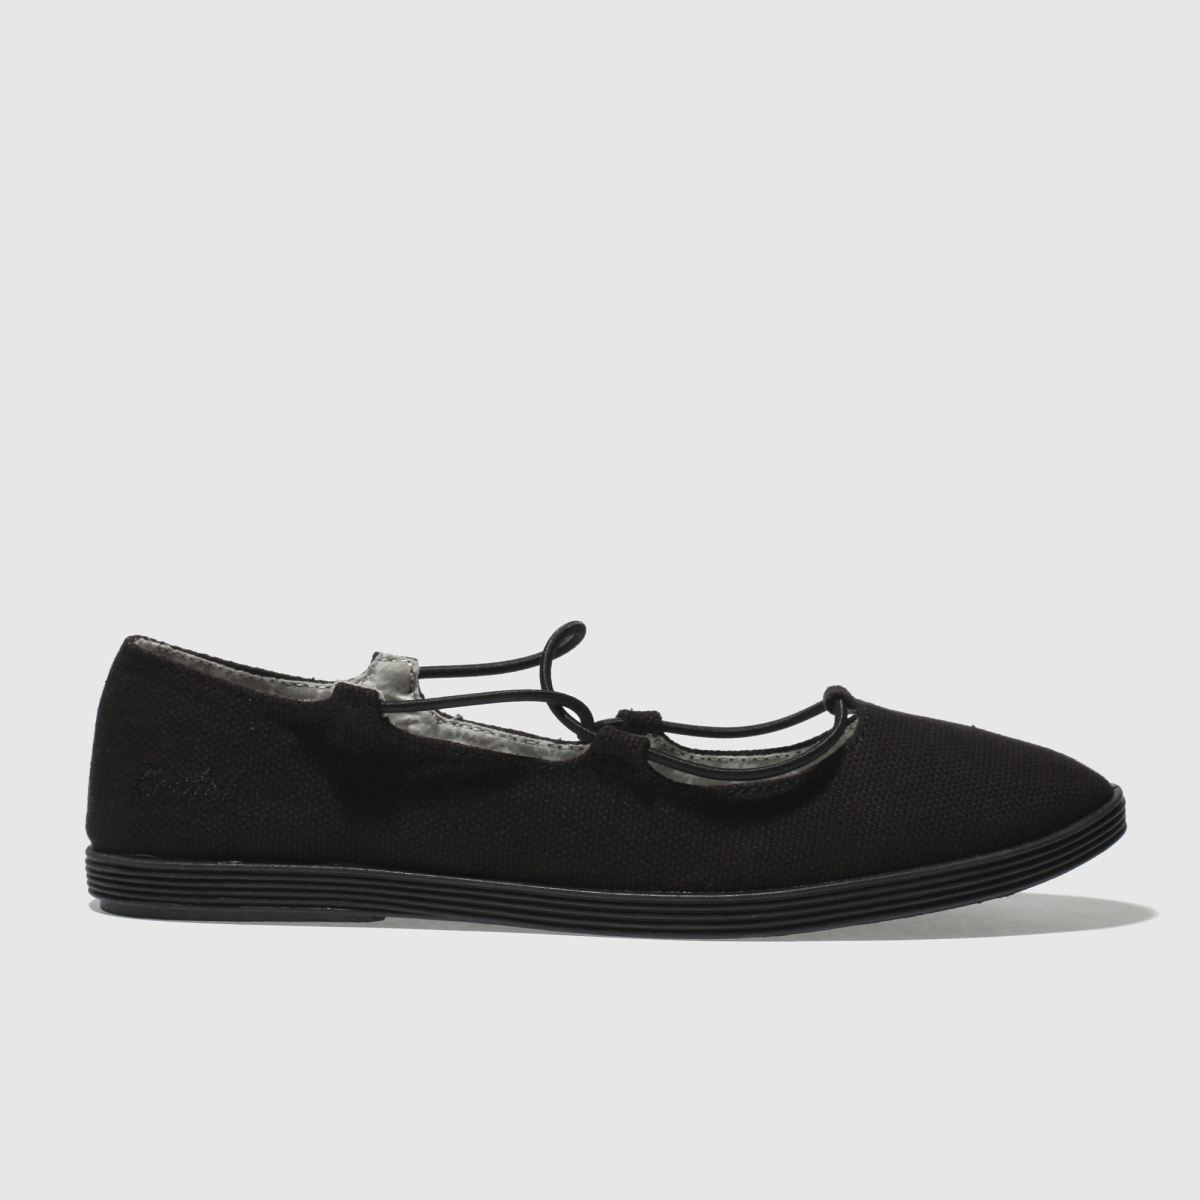 Blowfish Black Gastby Flat Shoes